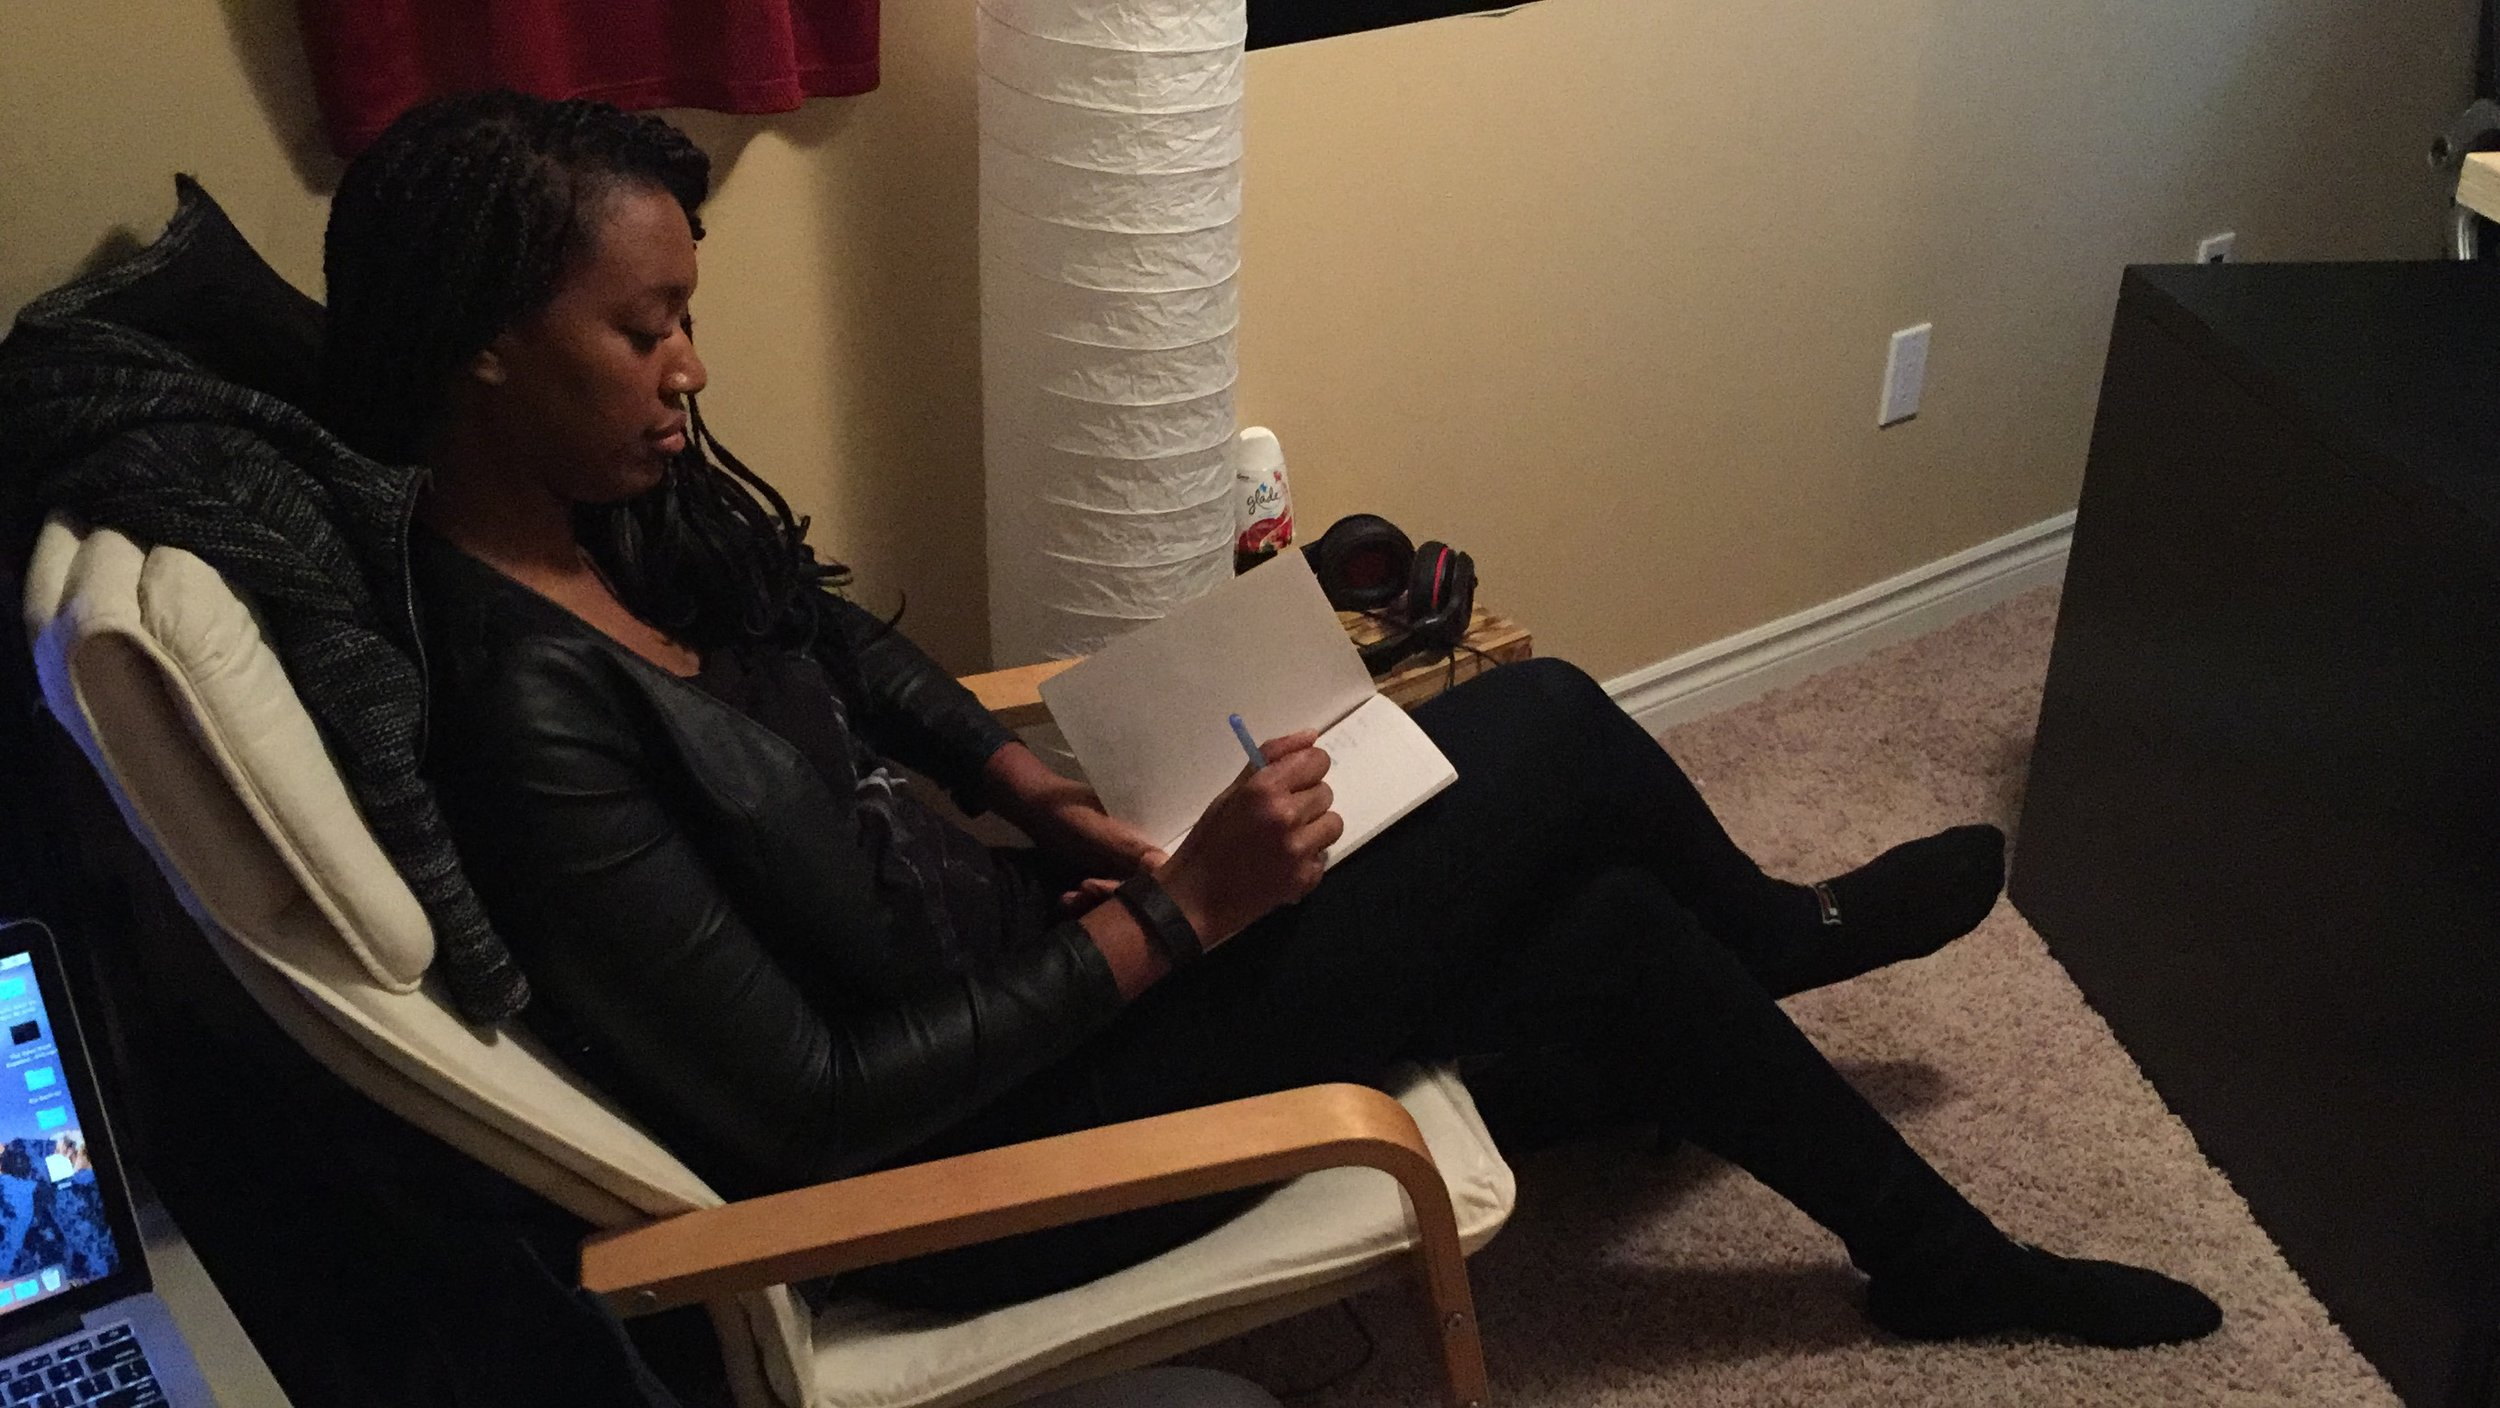 Contest winner Stacey A. puts pen to paper as she listens to a ChuBlaqa instrumental.